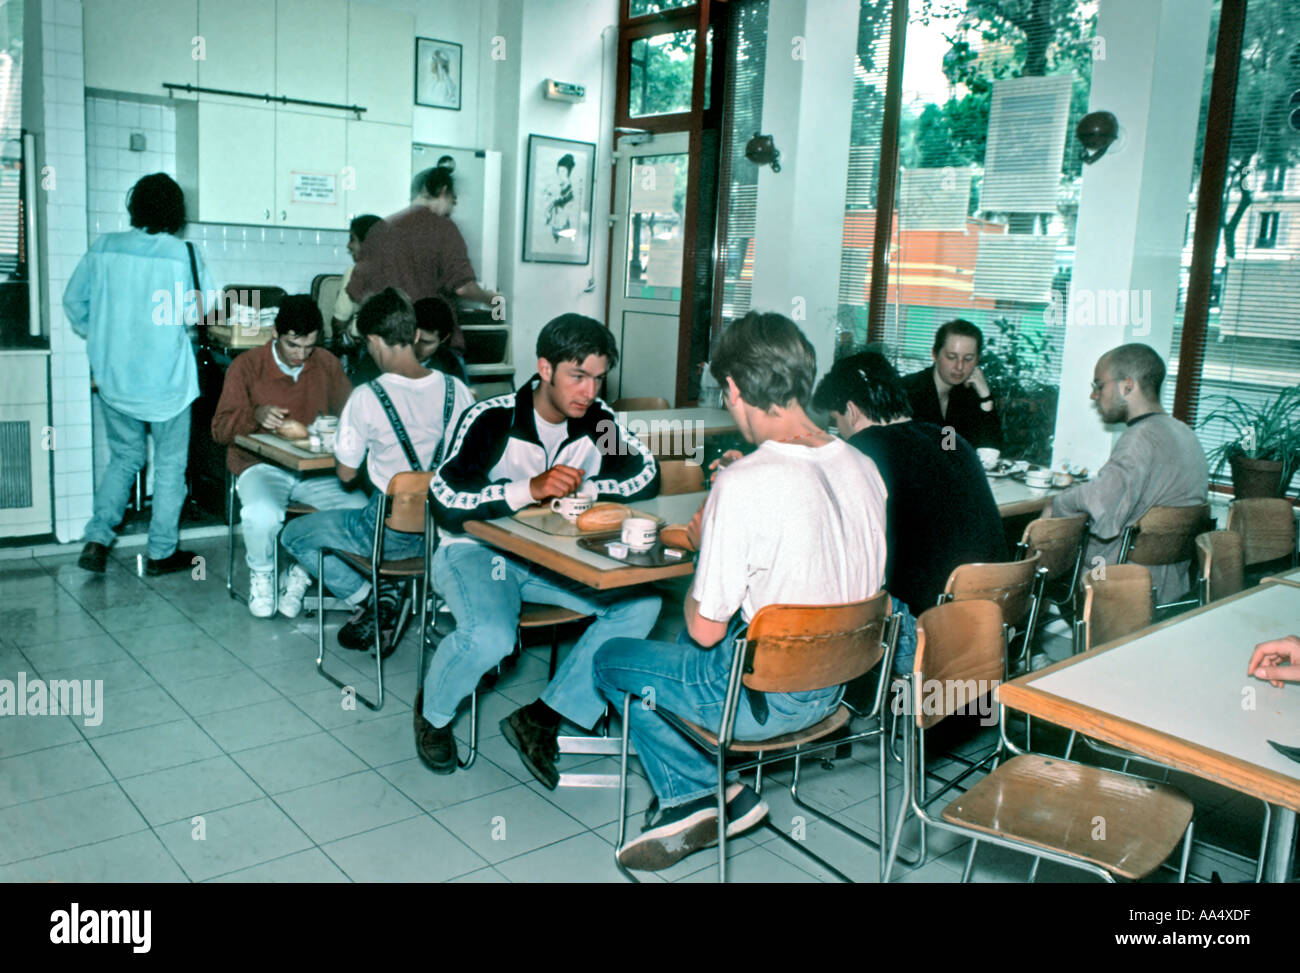 Paris France, Group Travel Teens Sharing Meals in Youth Hostel Cafeteria 'Auberge Jules e-rry' - Stock Image